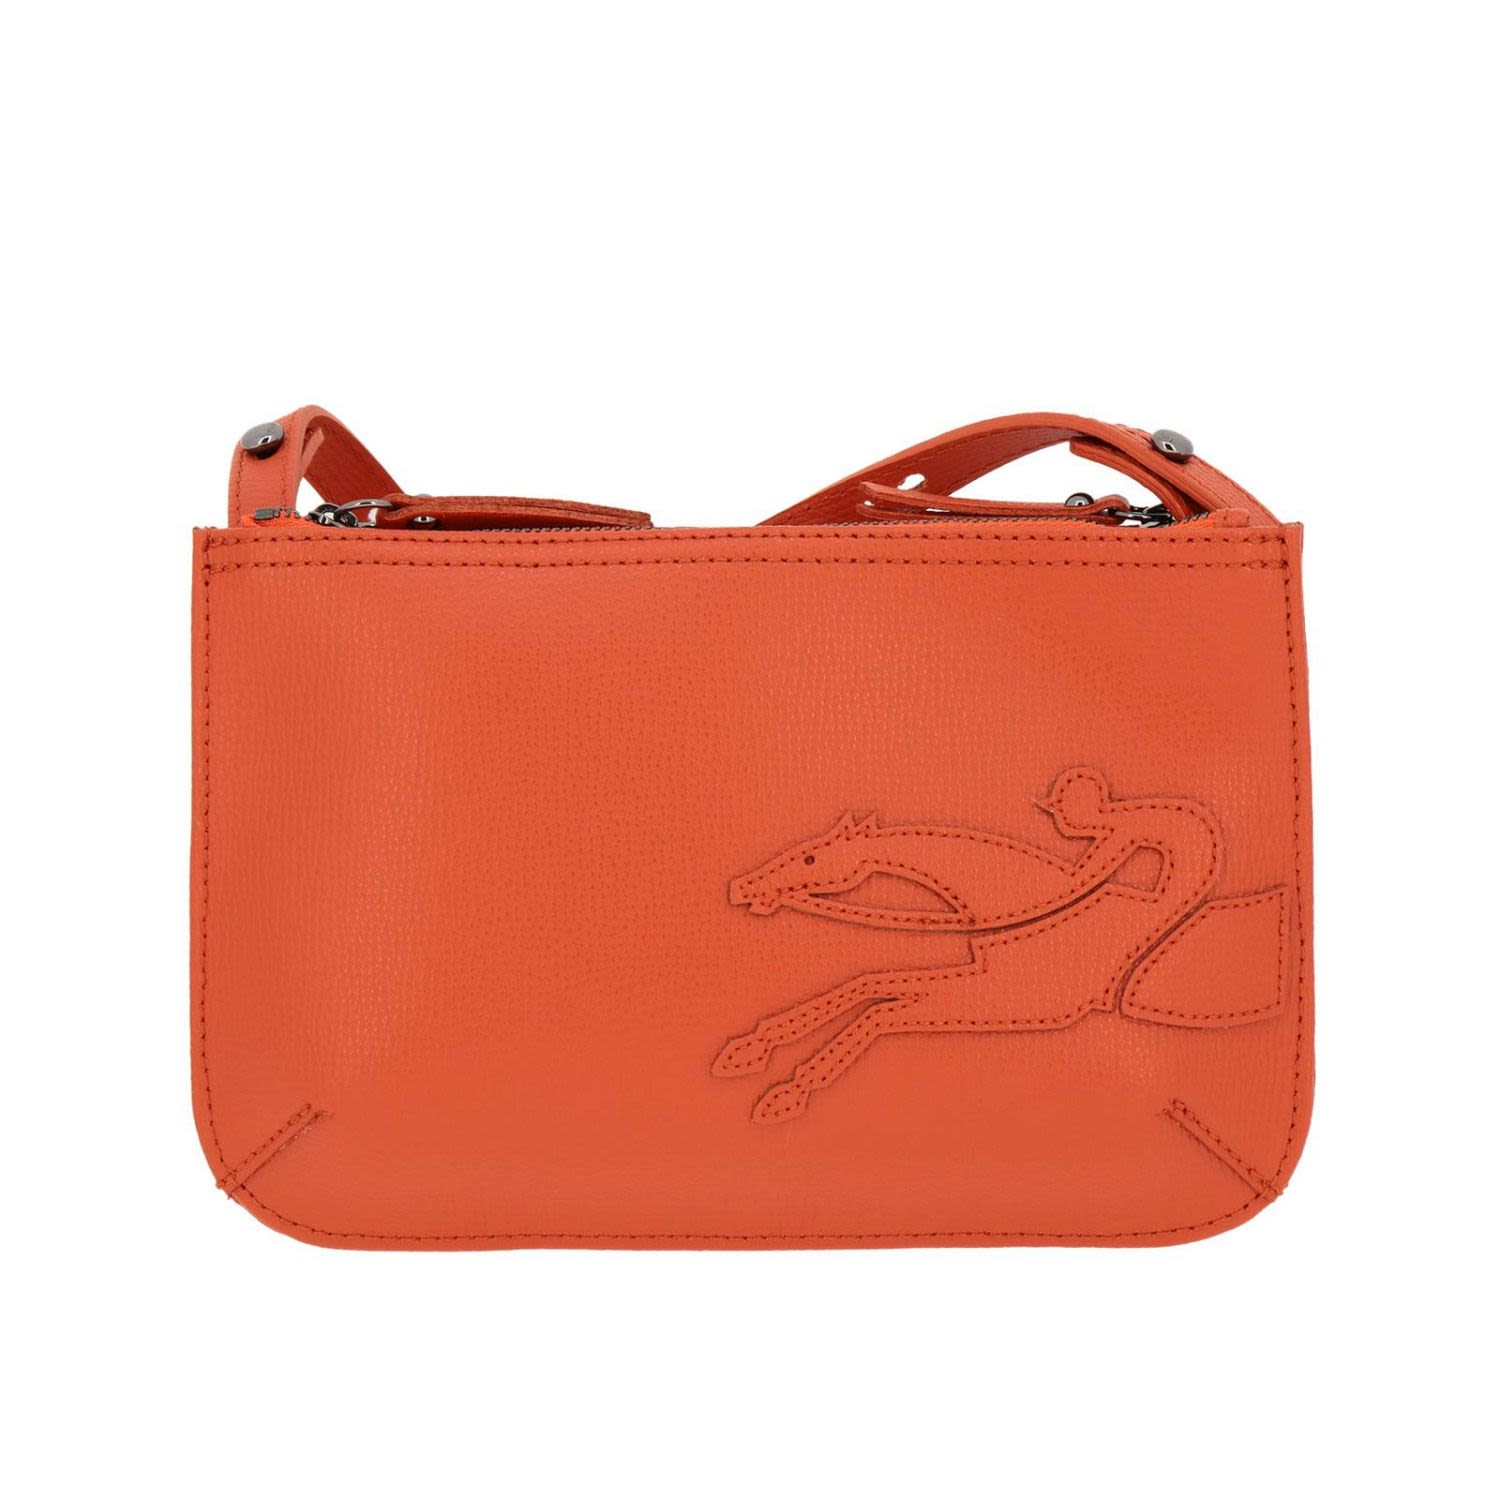 ab1b257ae170 Longchamp Longchamp Mini Bag Shoulder Bag Women Longchamp - coral ...